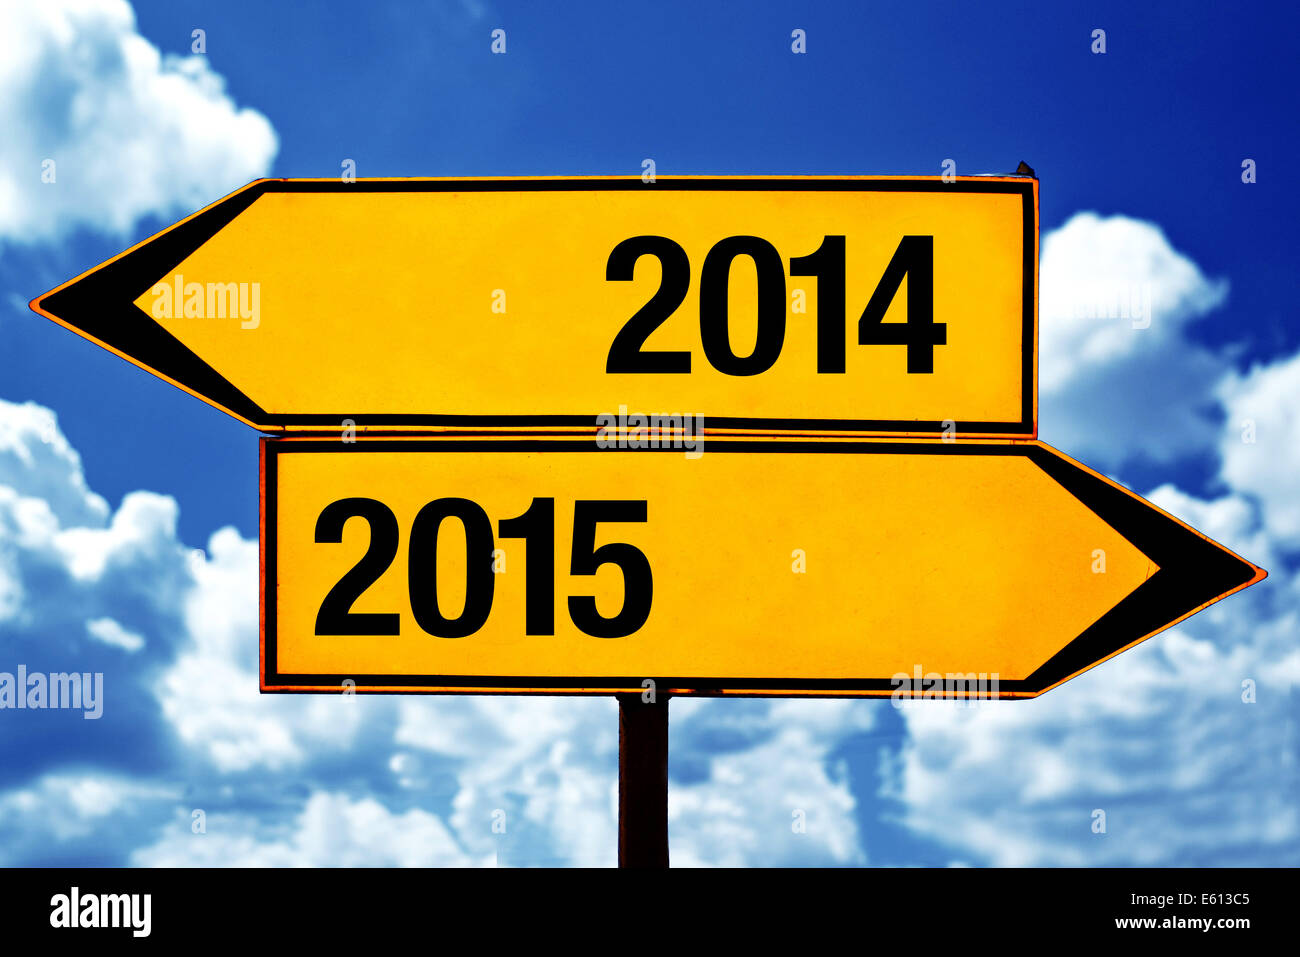 2014 or 2015, opposite road direction signs as New Year concept. - Stock Image